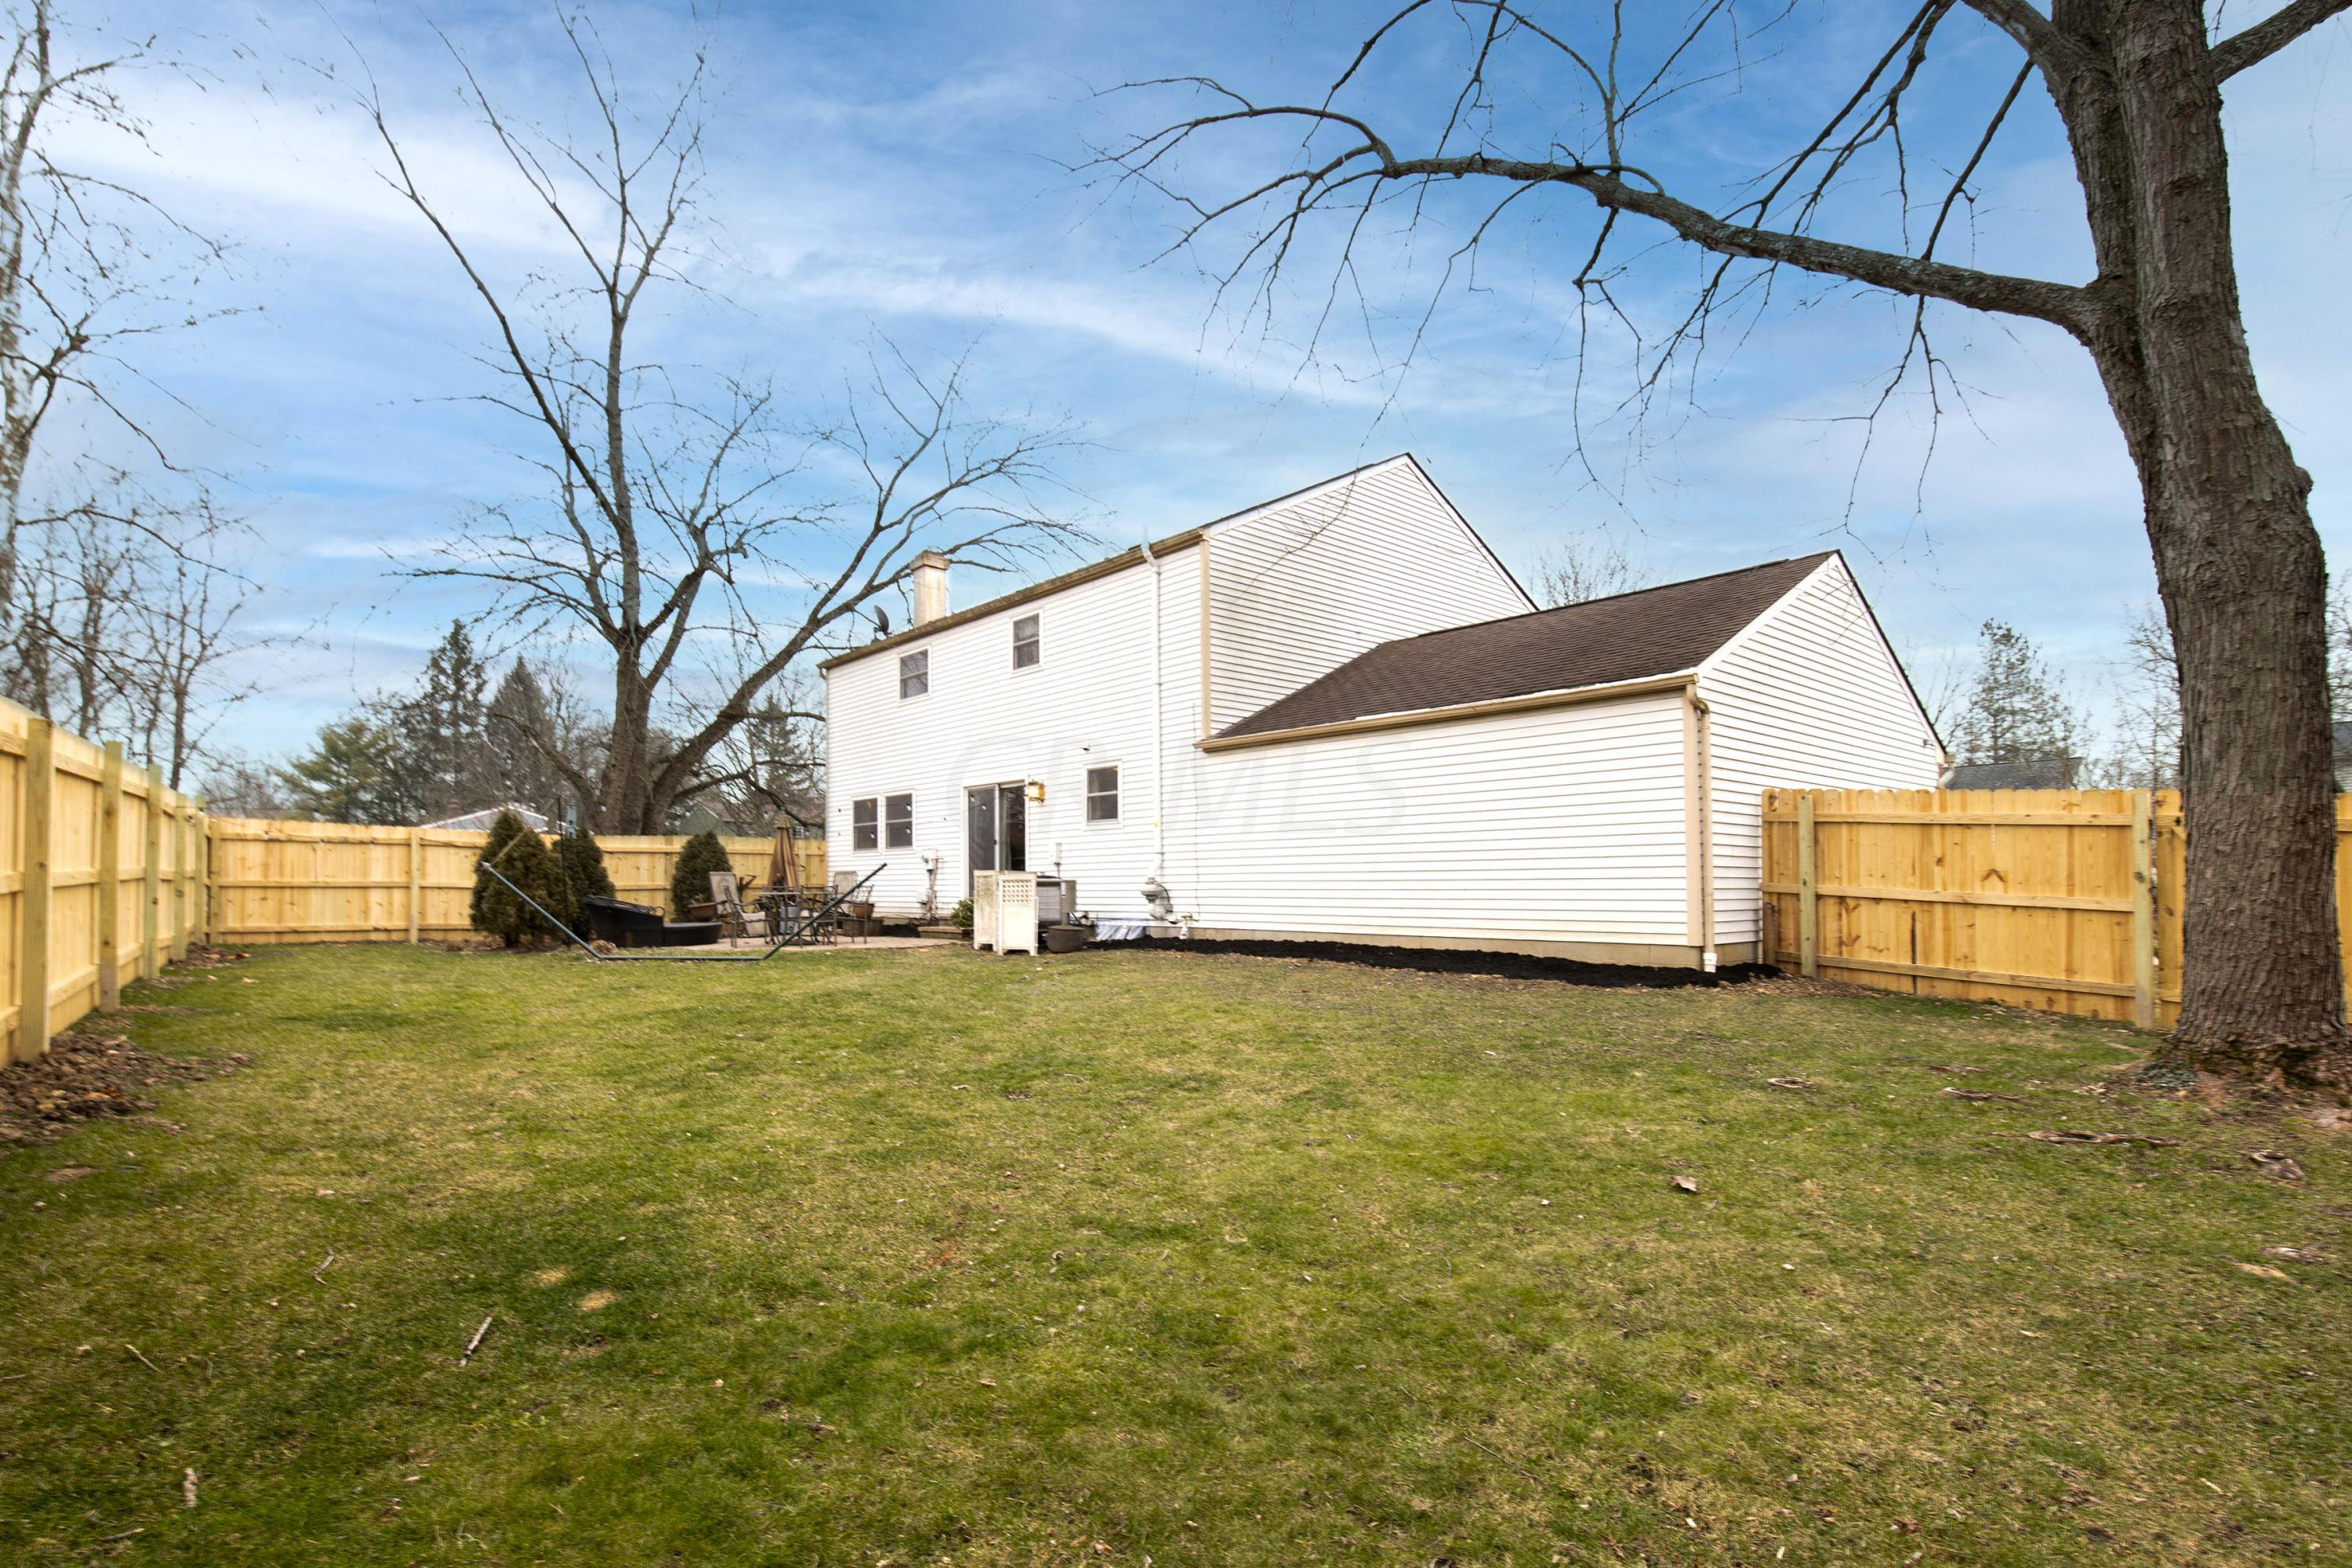 2516 Sawmill Forest Avenue, Dublin, Ohio 43016, 4 Bedrooms Bedrooms, ,3 BathroomsBathrooms,Residential,For Sale,Sawmill Forest,221001047